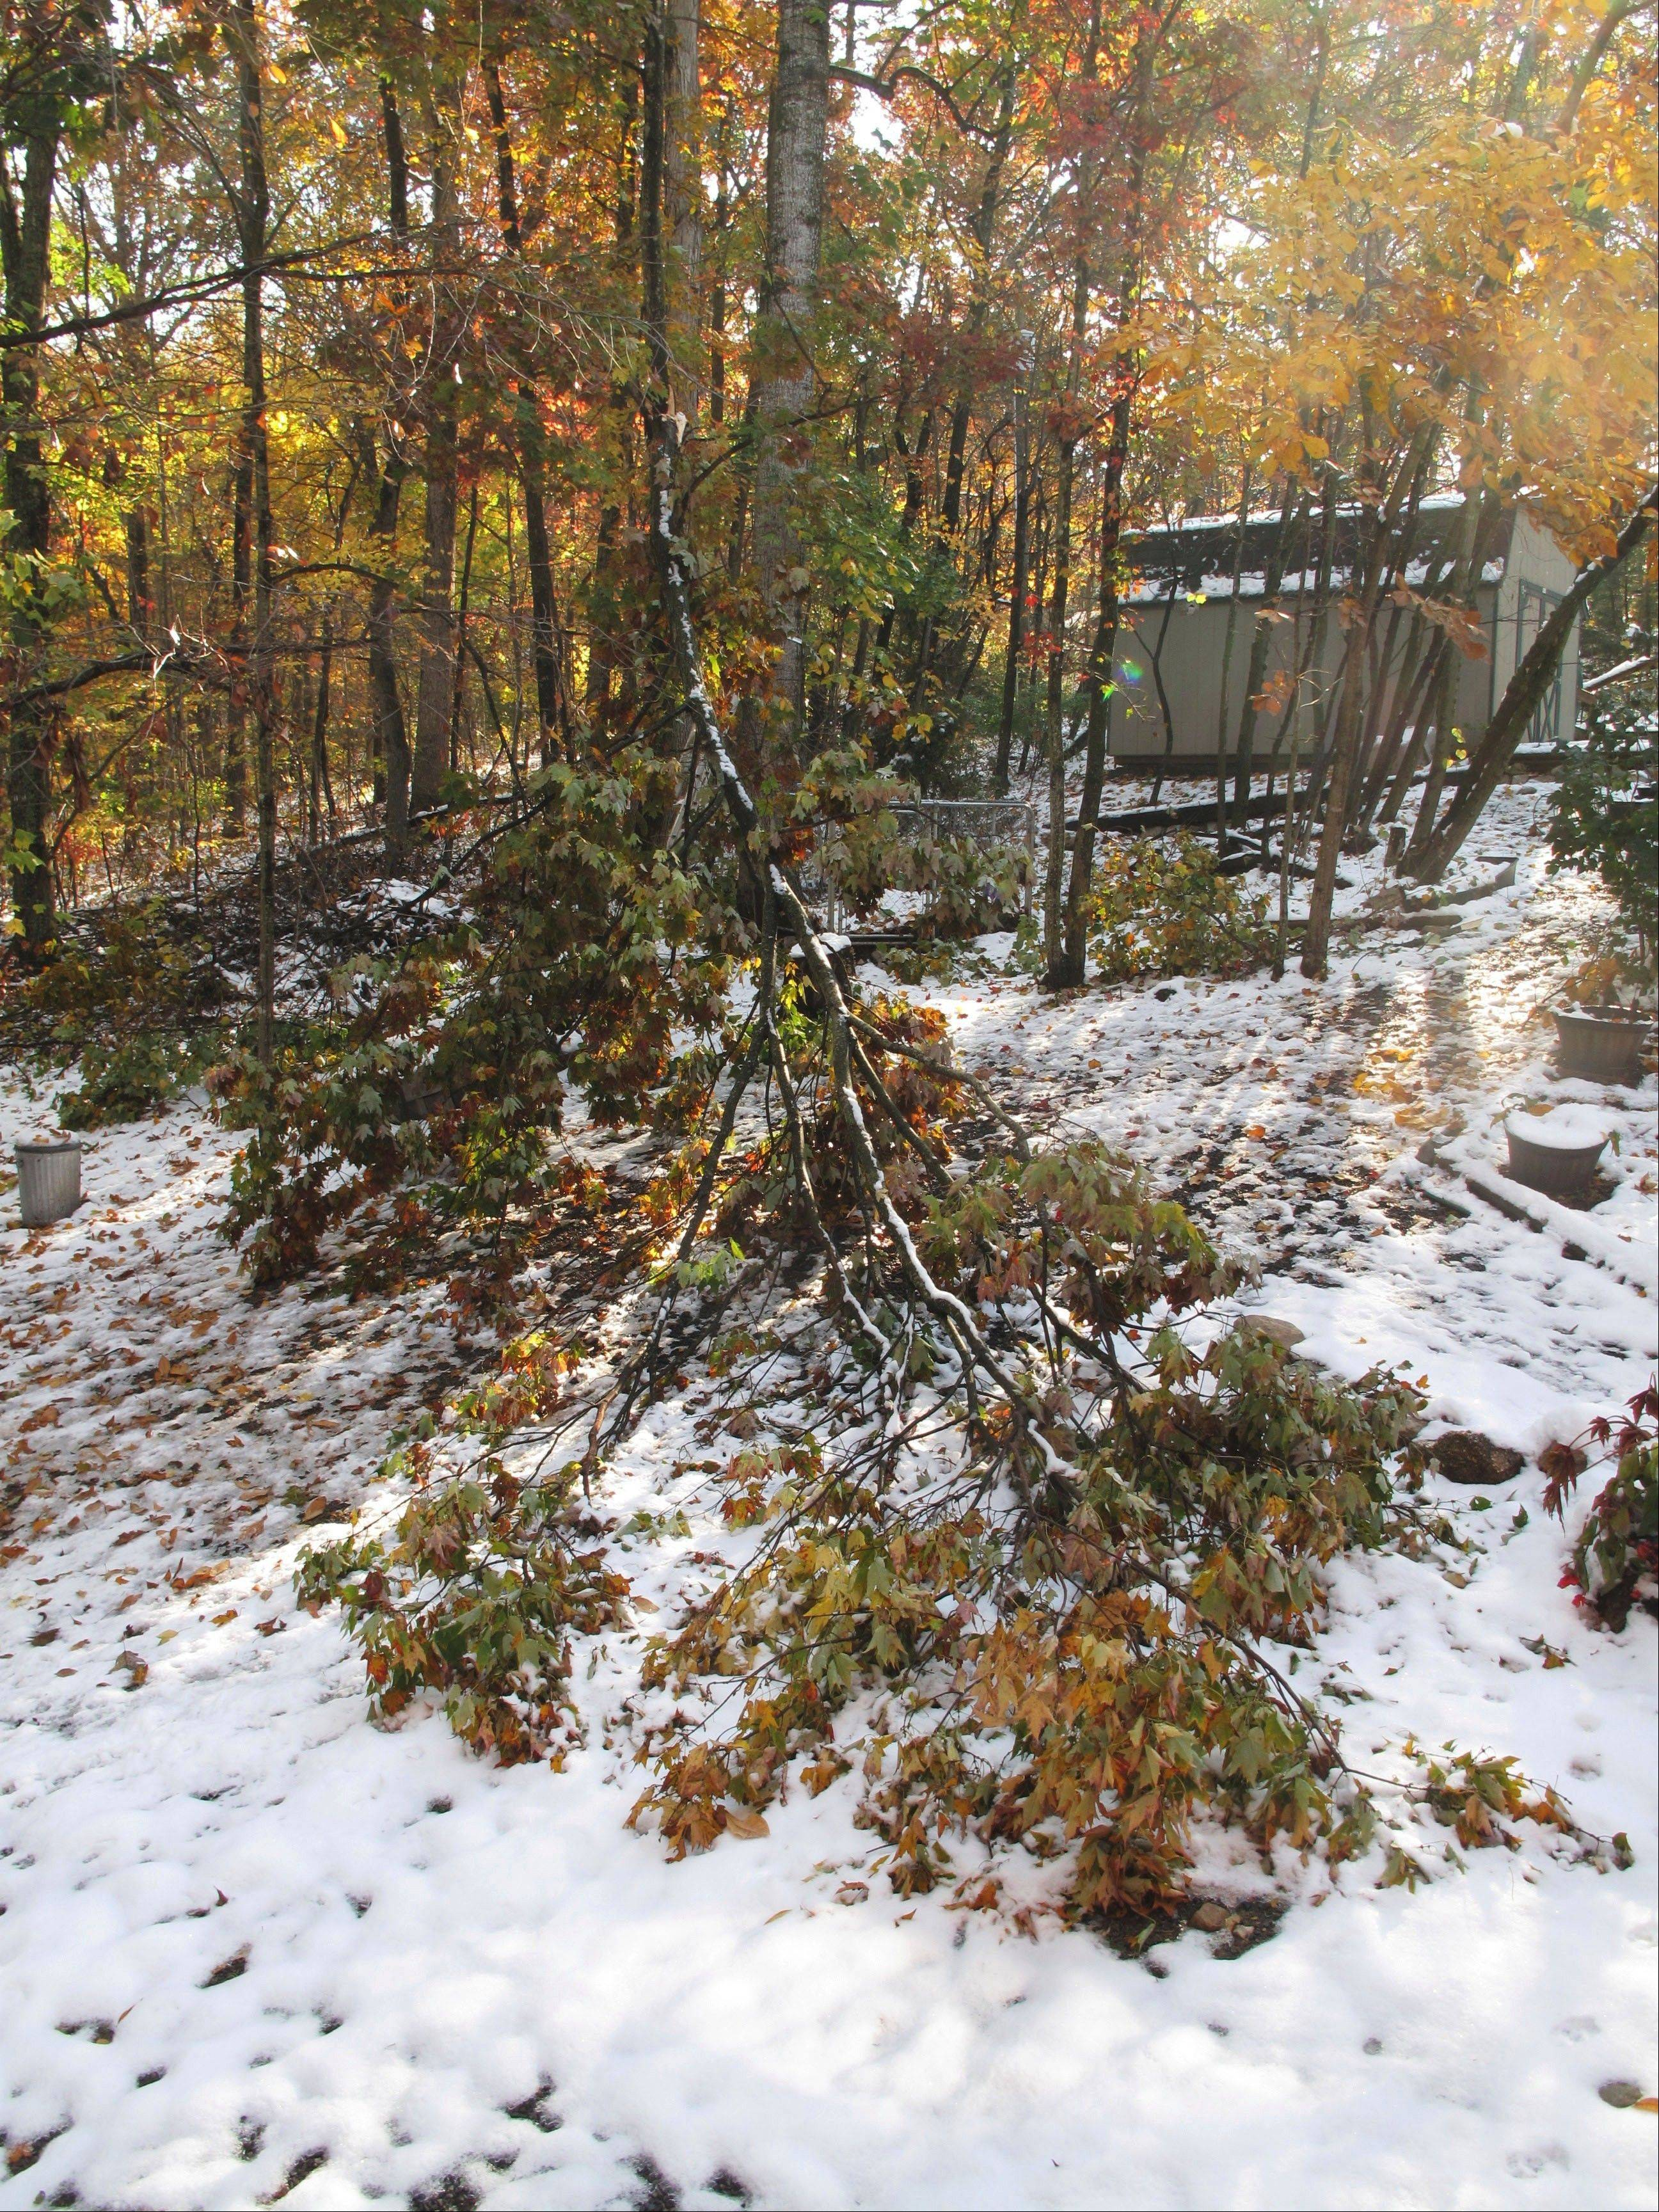 Damaged trees from a storm that packed wet, heavy snow on portions of Virginia's Shenandoah Valley. This tree couldn't be saved and had to be removed.